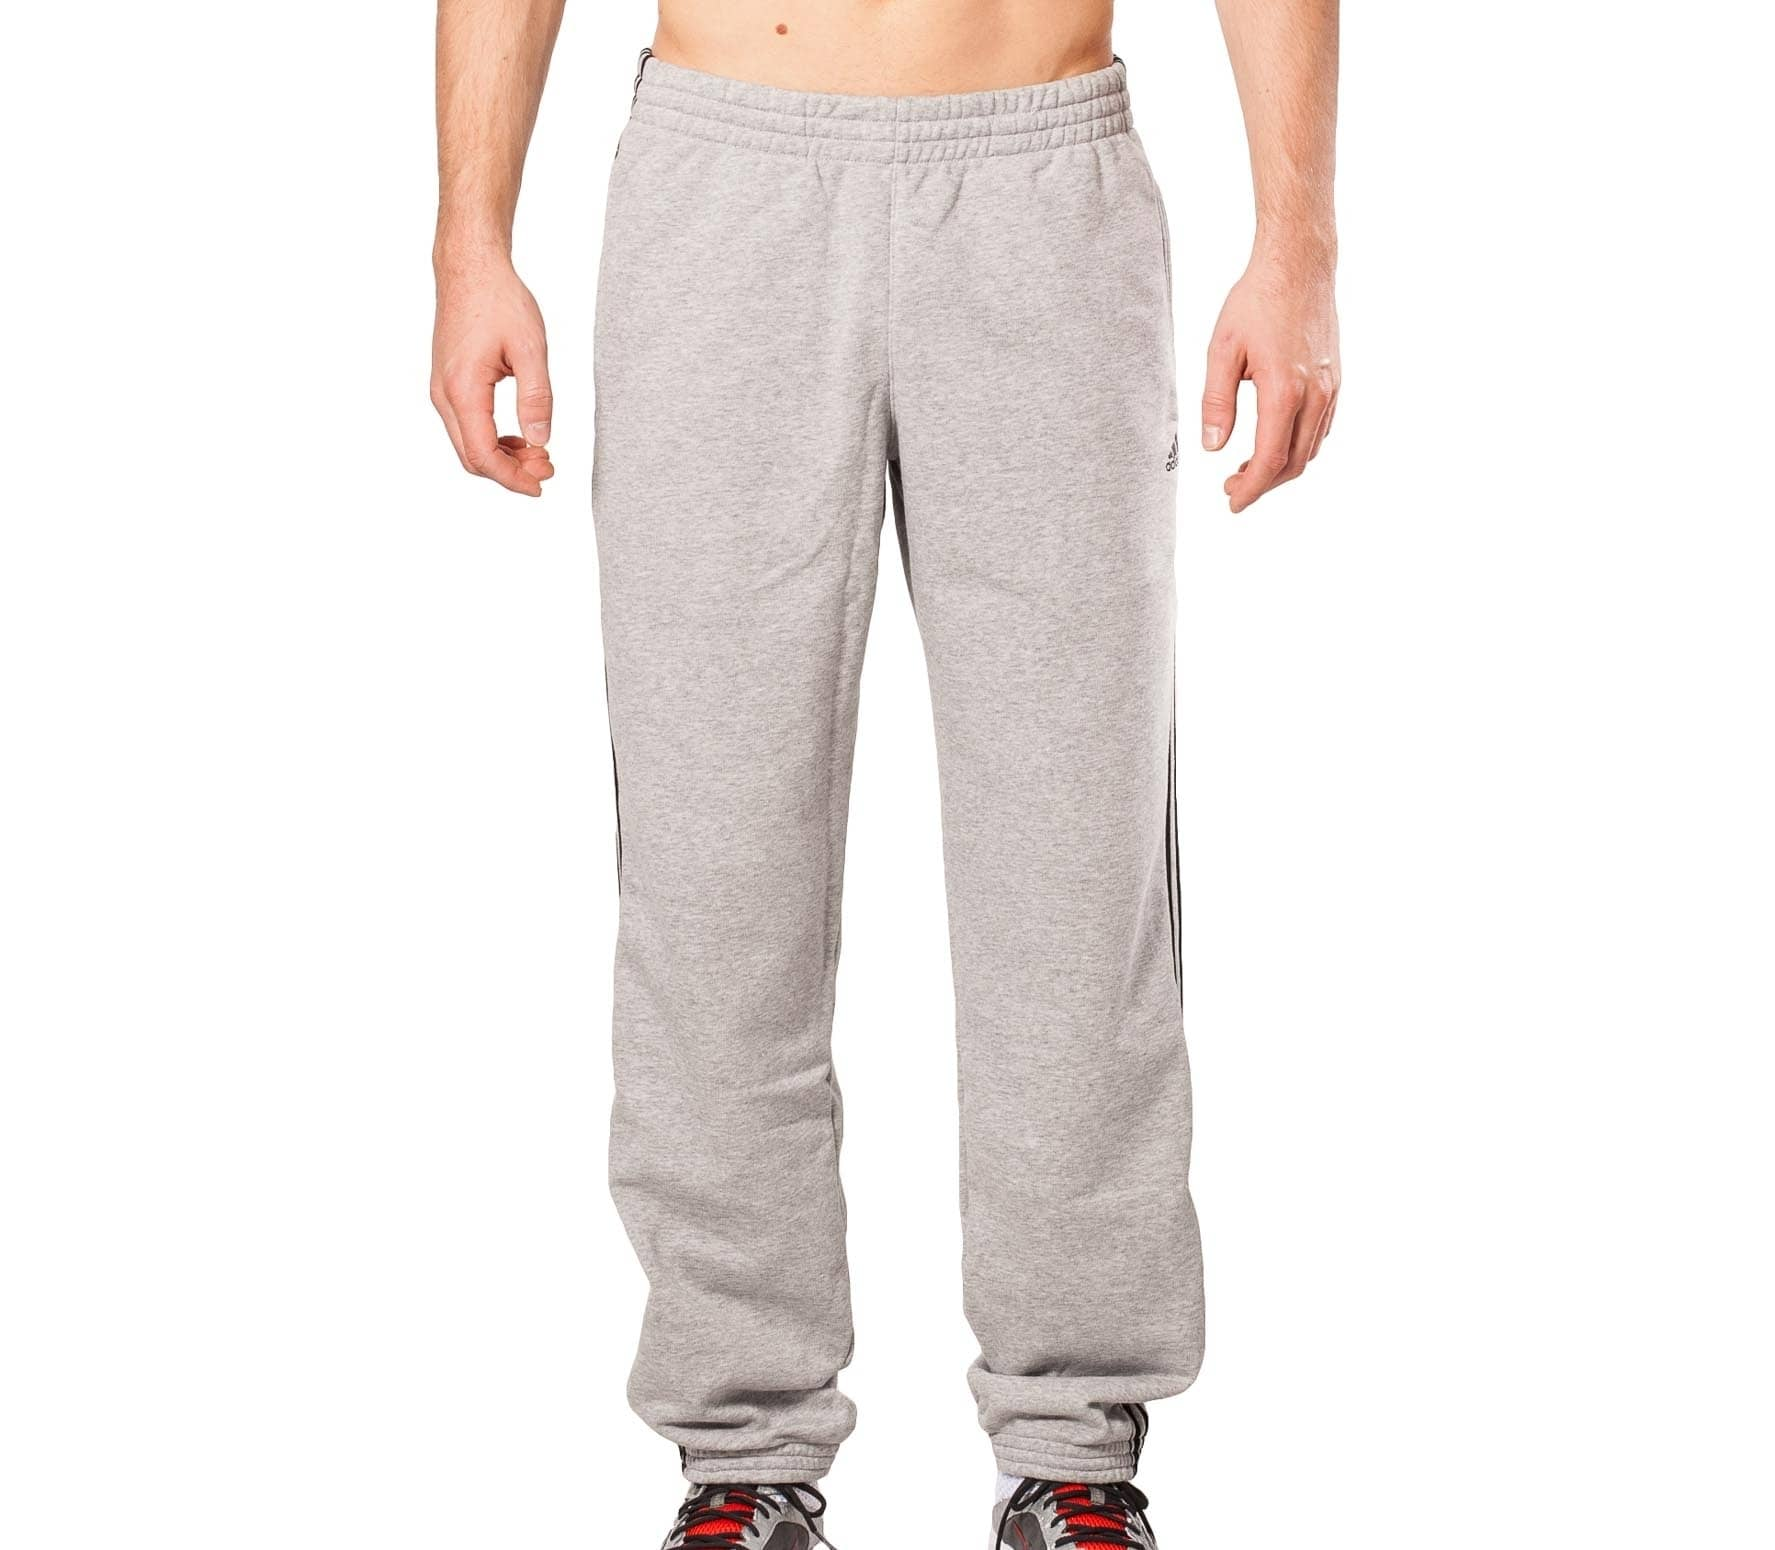 a6ad021bb77d Adidas - Fitness- och träningsbyxor Herr Essentials 3 Stripes Light Sweat  Pant - SS13